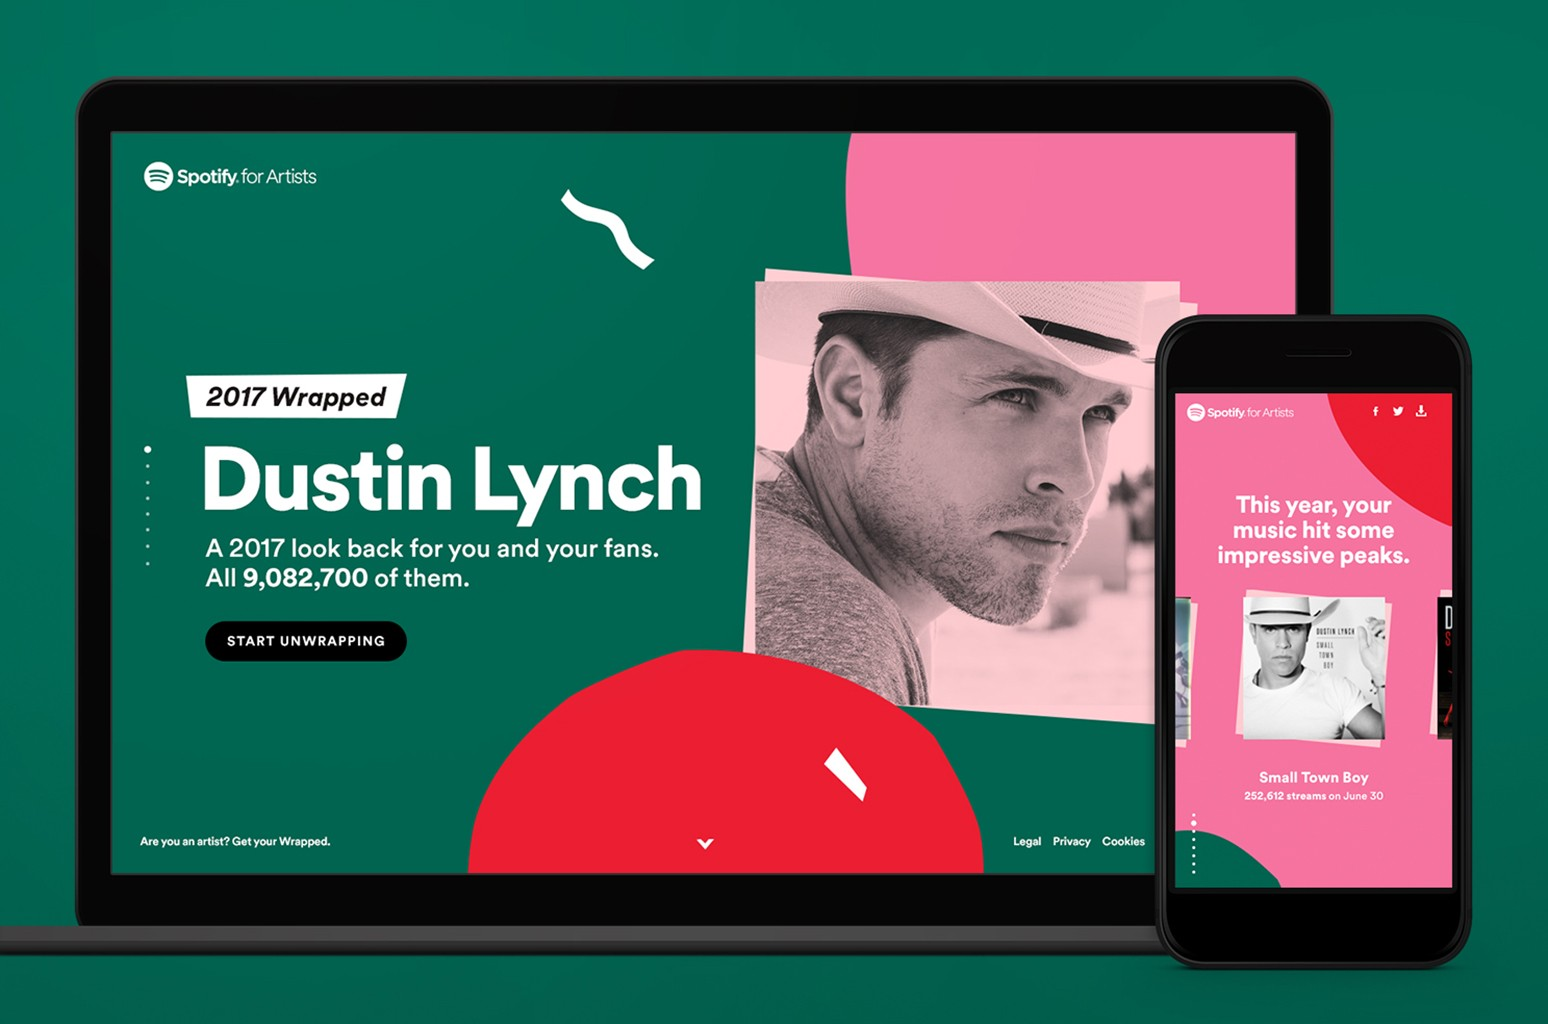 Dustin Lynch Spotify for Artists